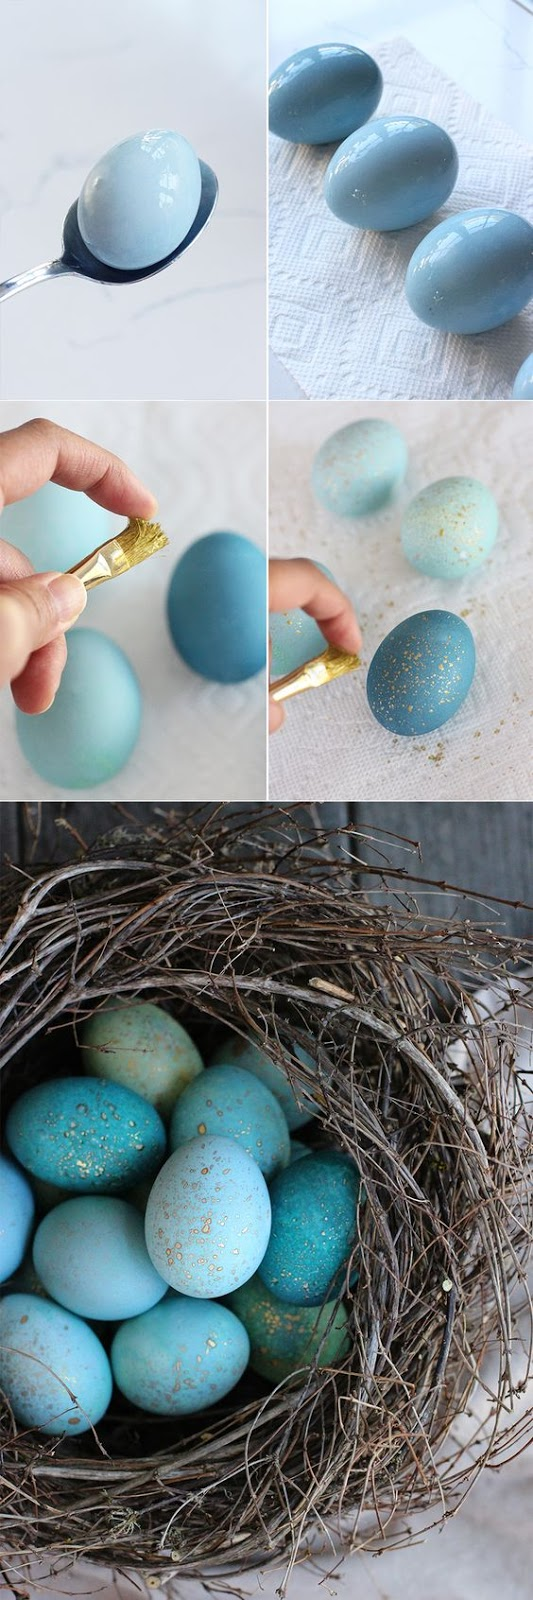 http://honestlyyum.com/12980/diy-dyed-robin-eggs/#comments